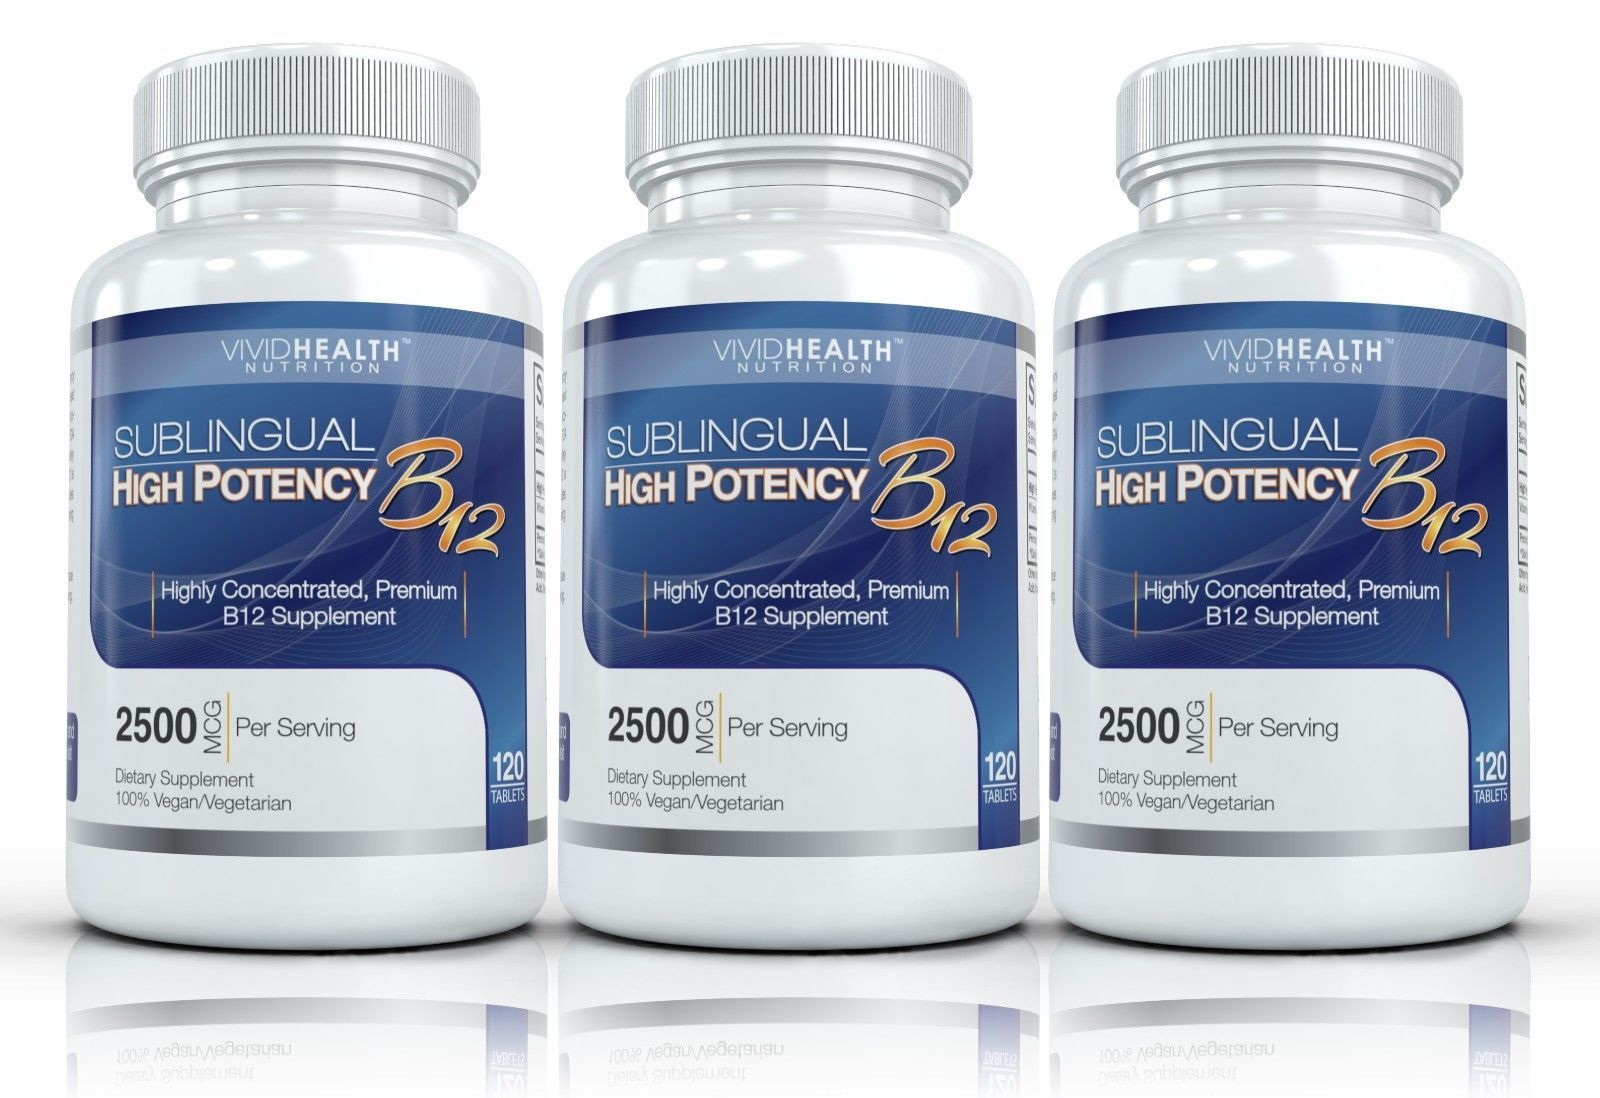 Details about 3x Vivid Health Nutrition High Potency